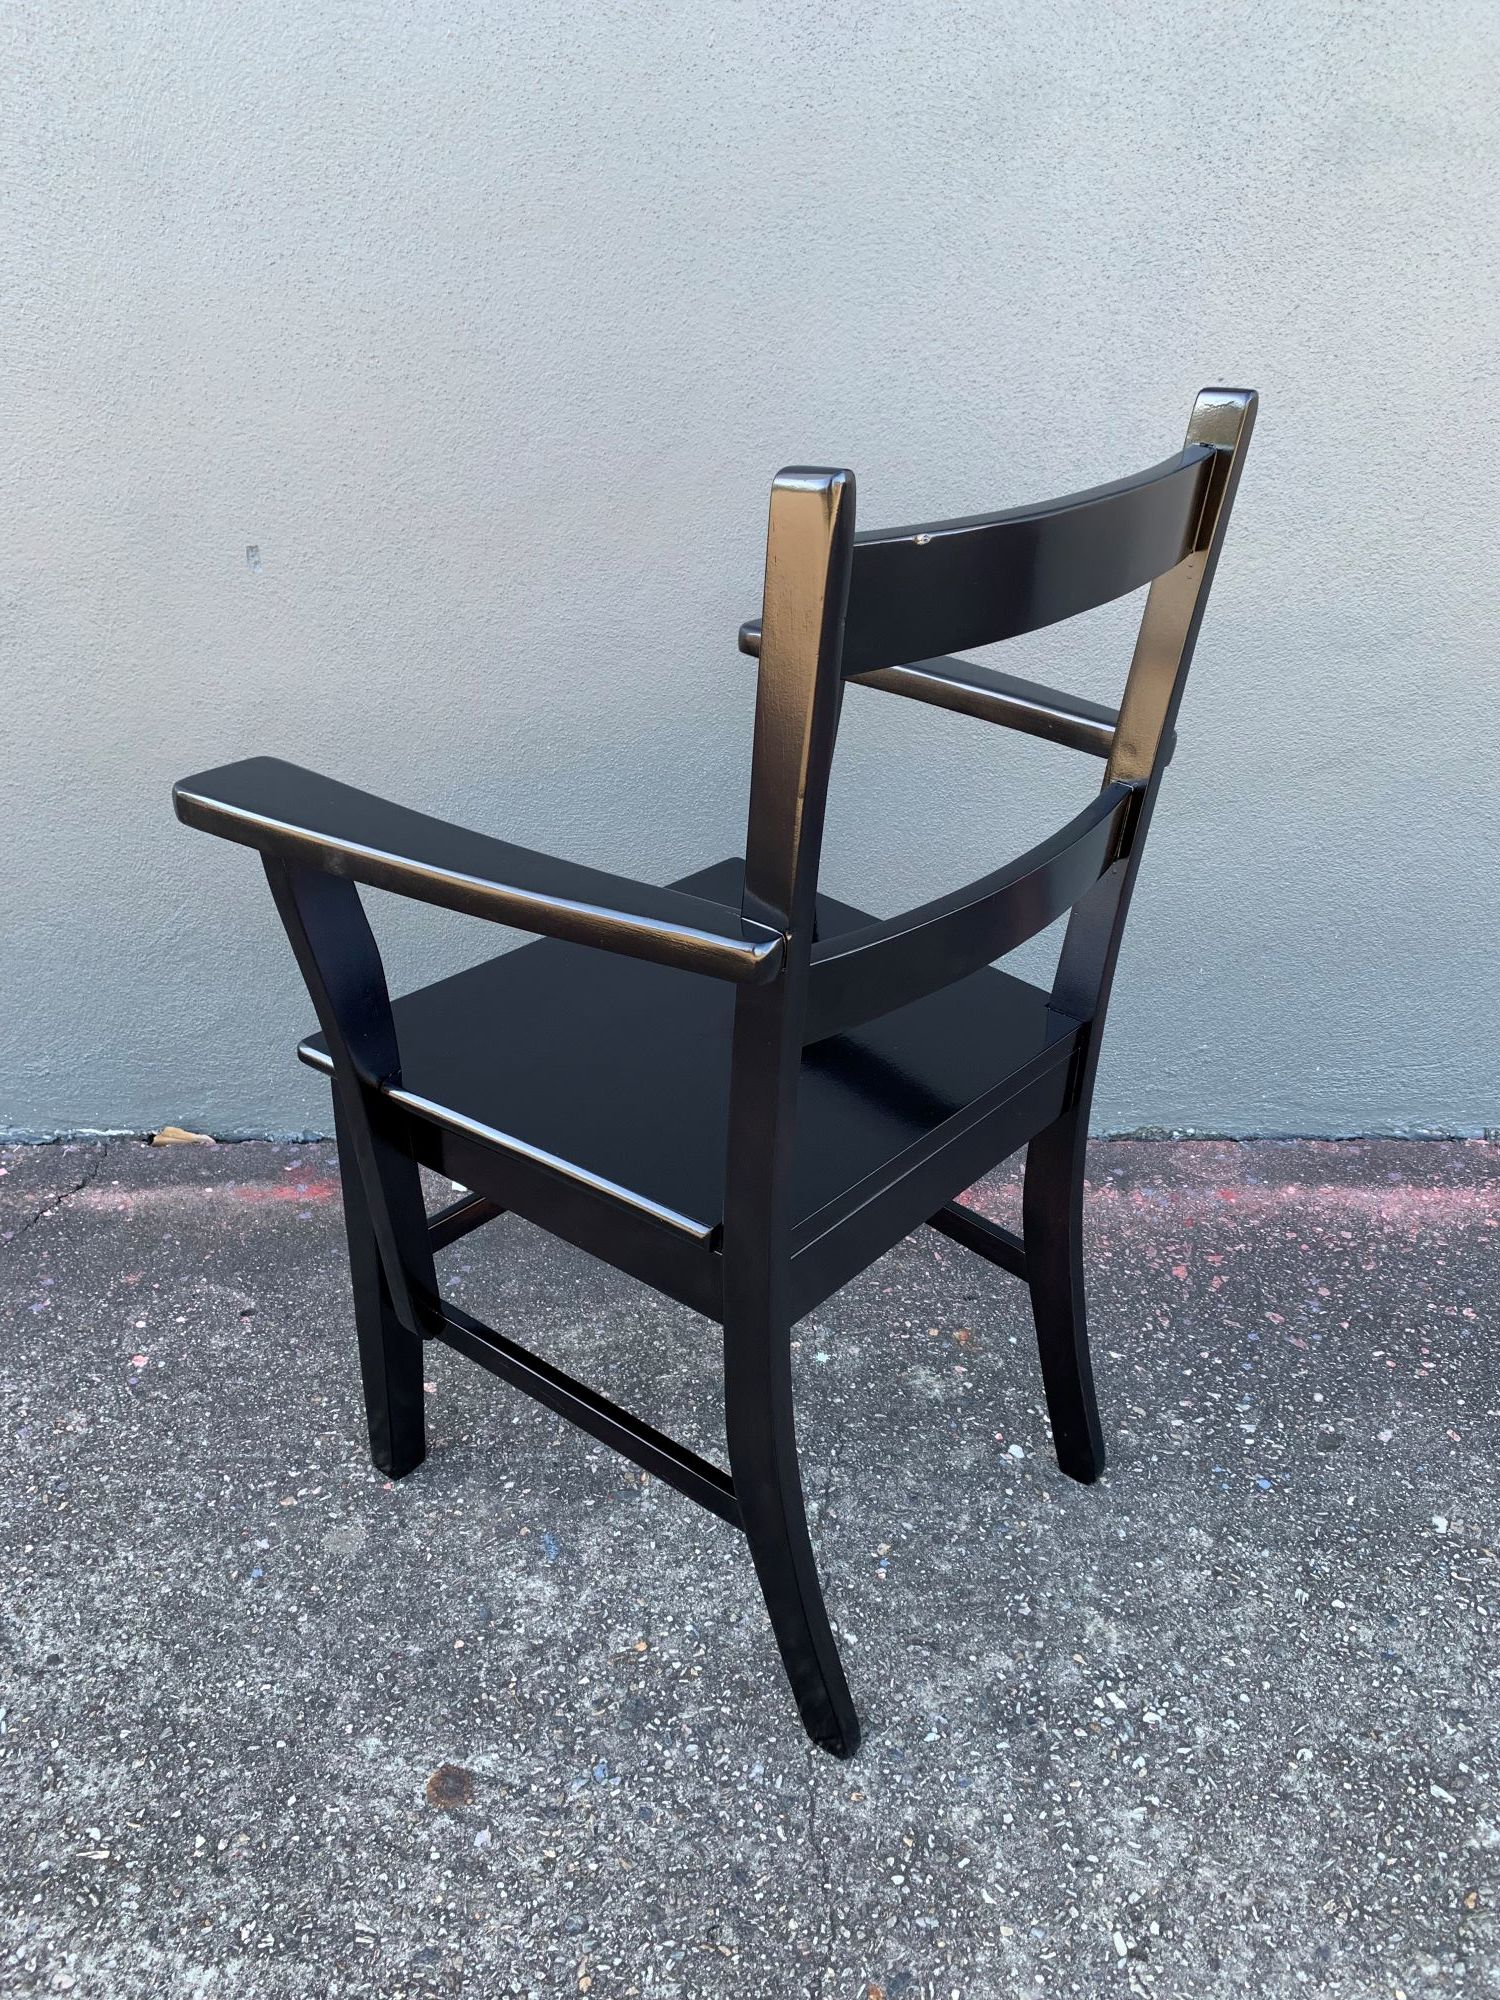 chair after restoration bywater design.jpg